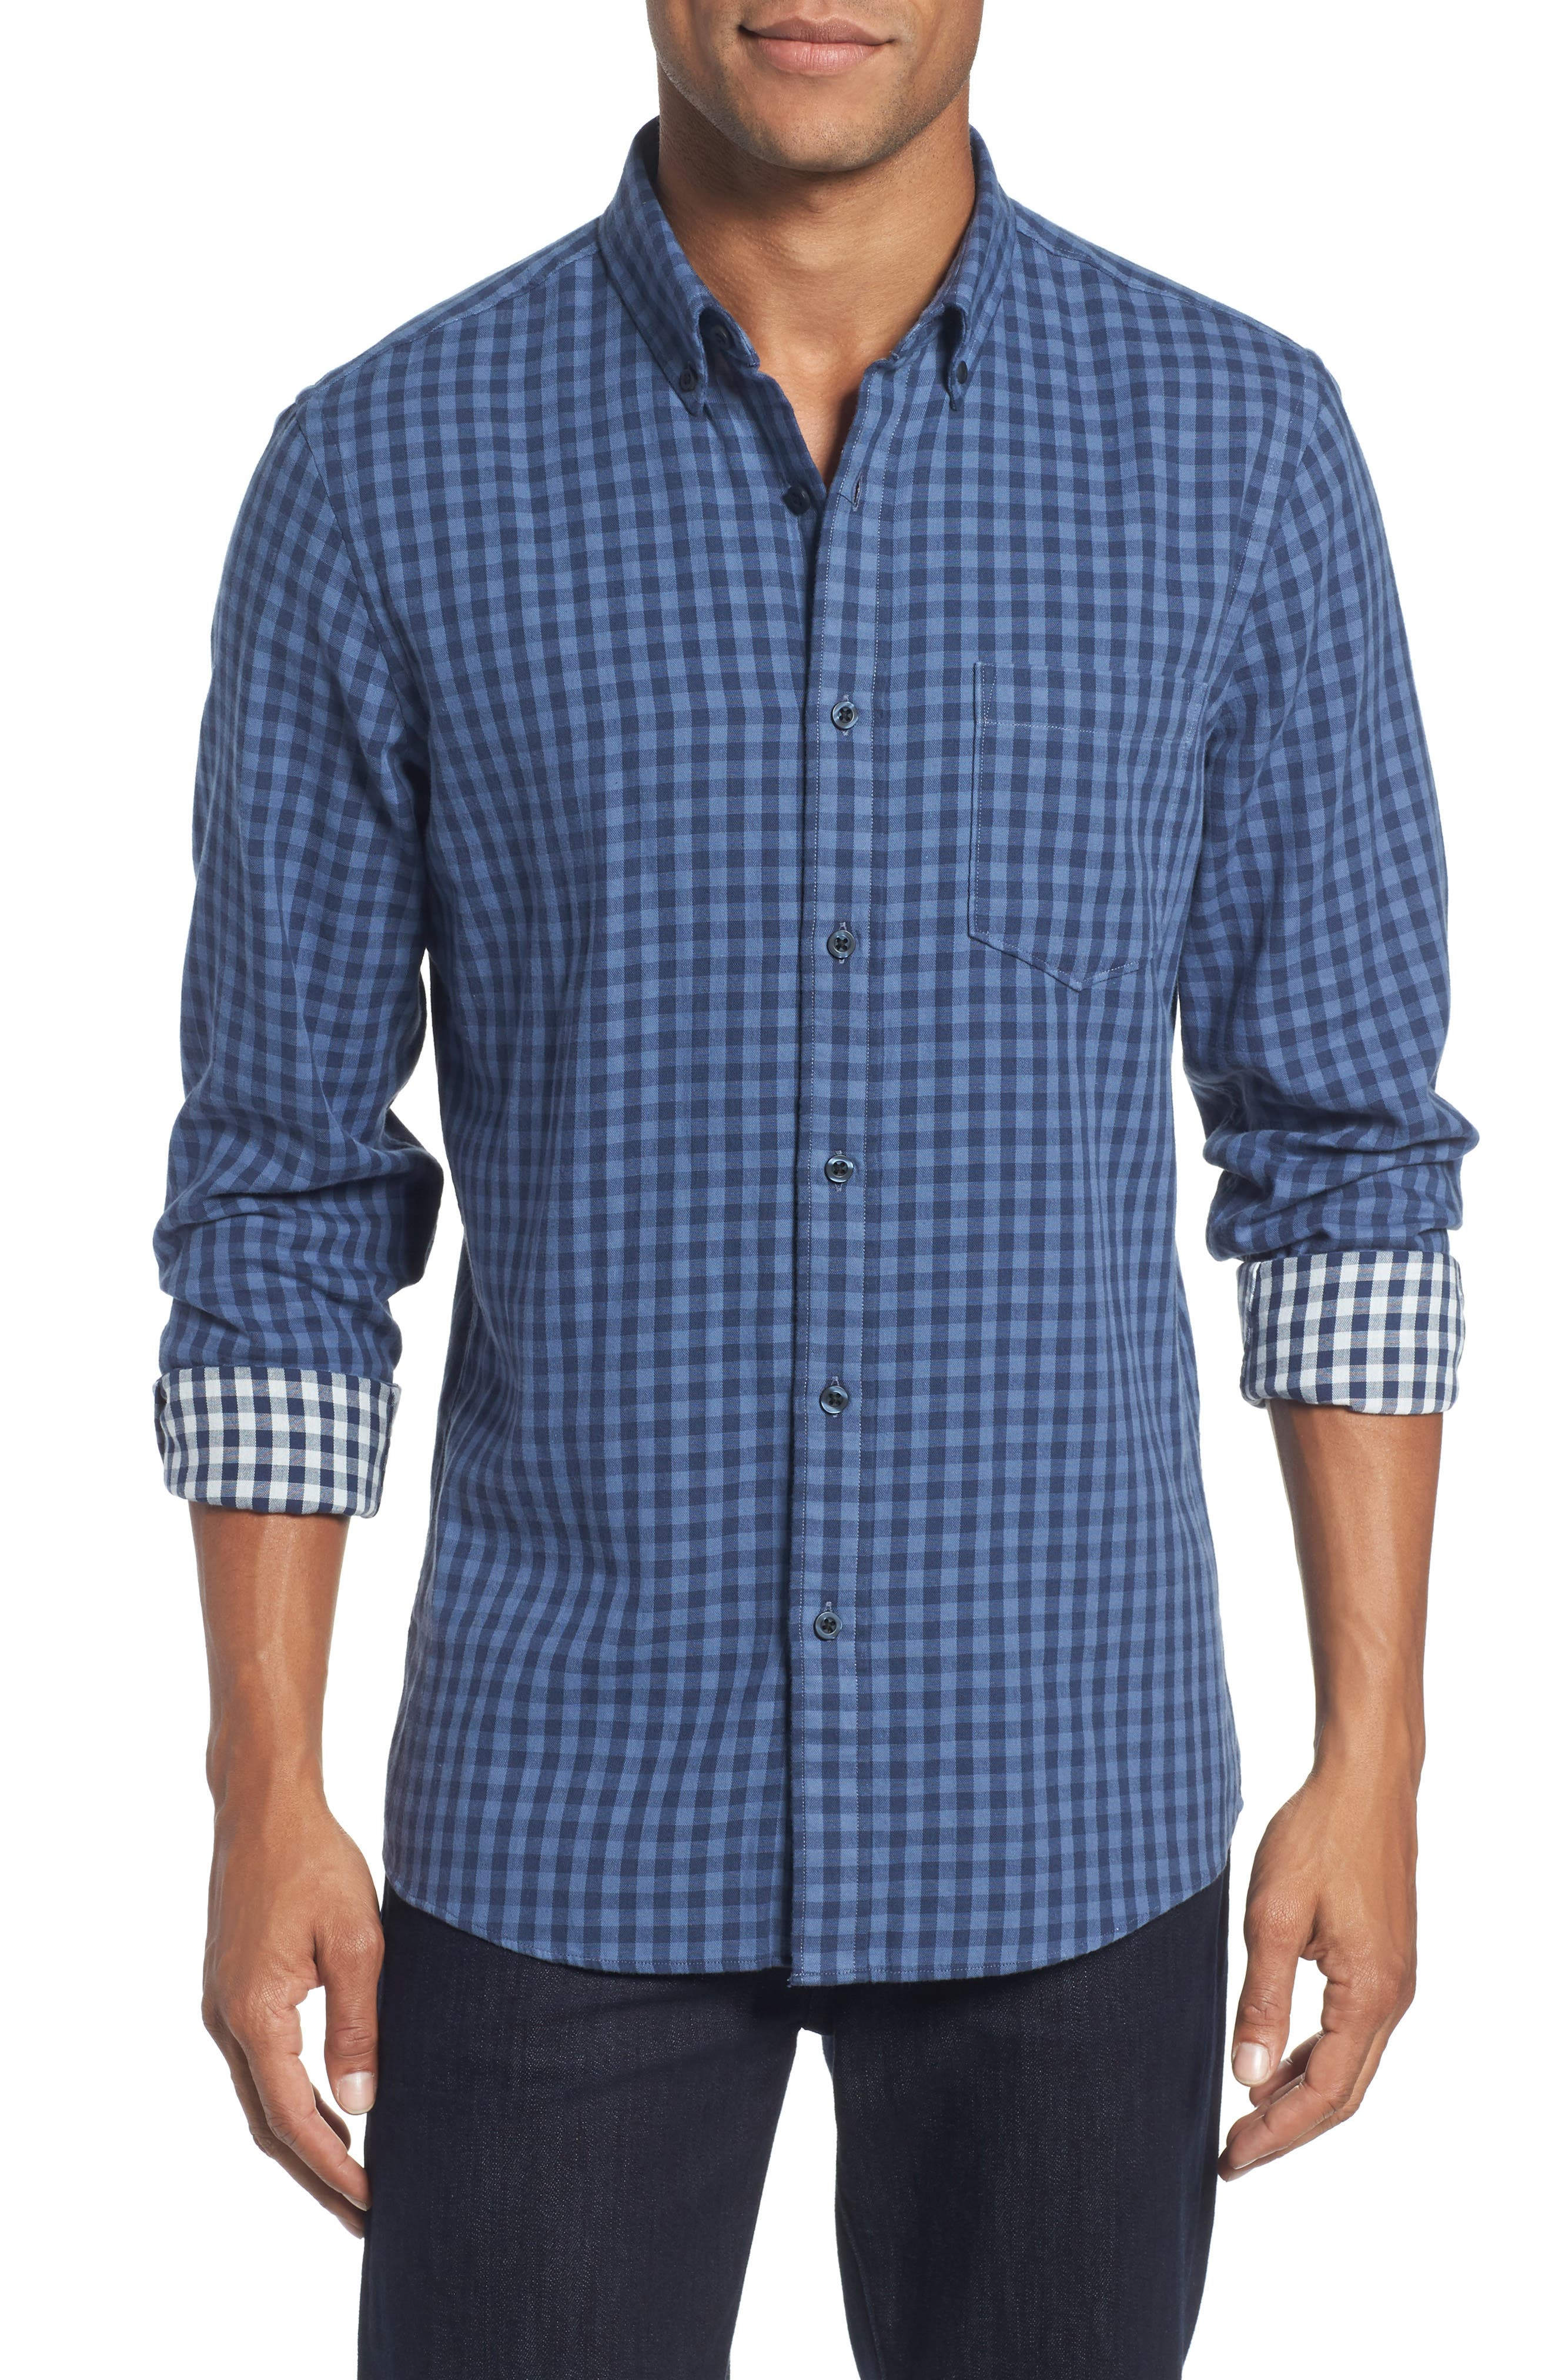 Trim Fit Duofold Check Sport Shirt,                             Main thumbnail 1, color,                             Blue Canal Navy Plaid Duofold